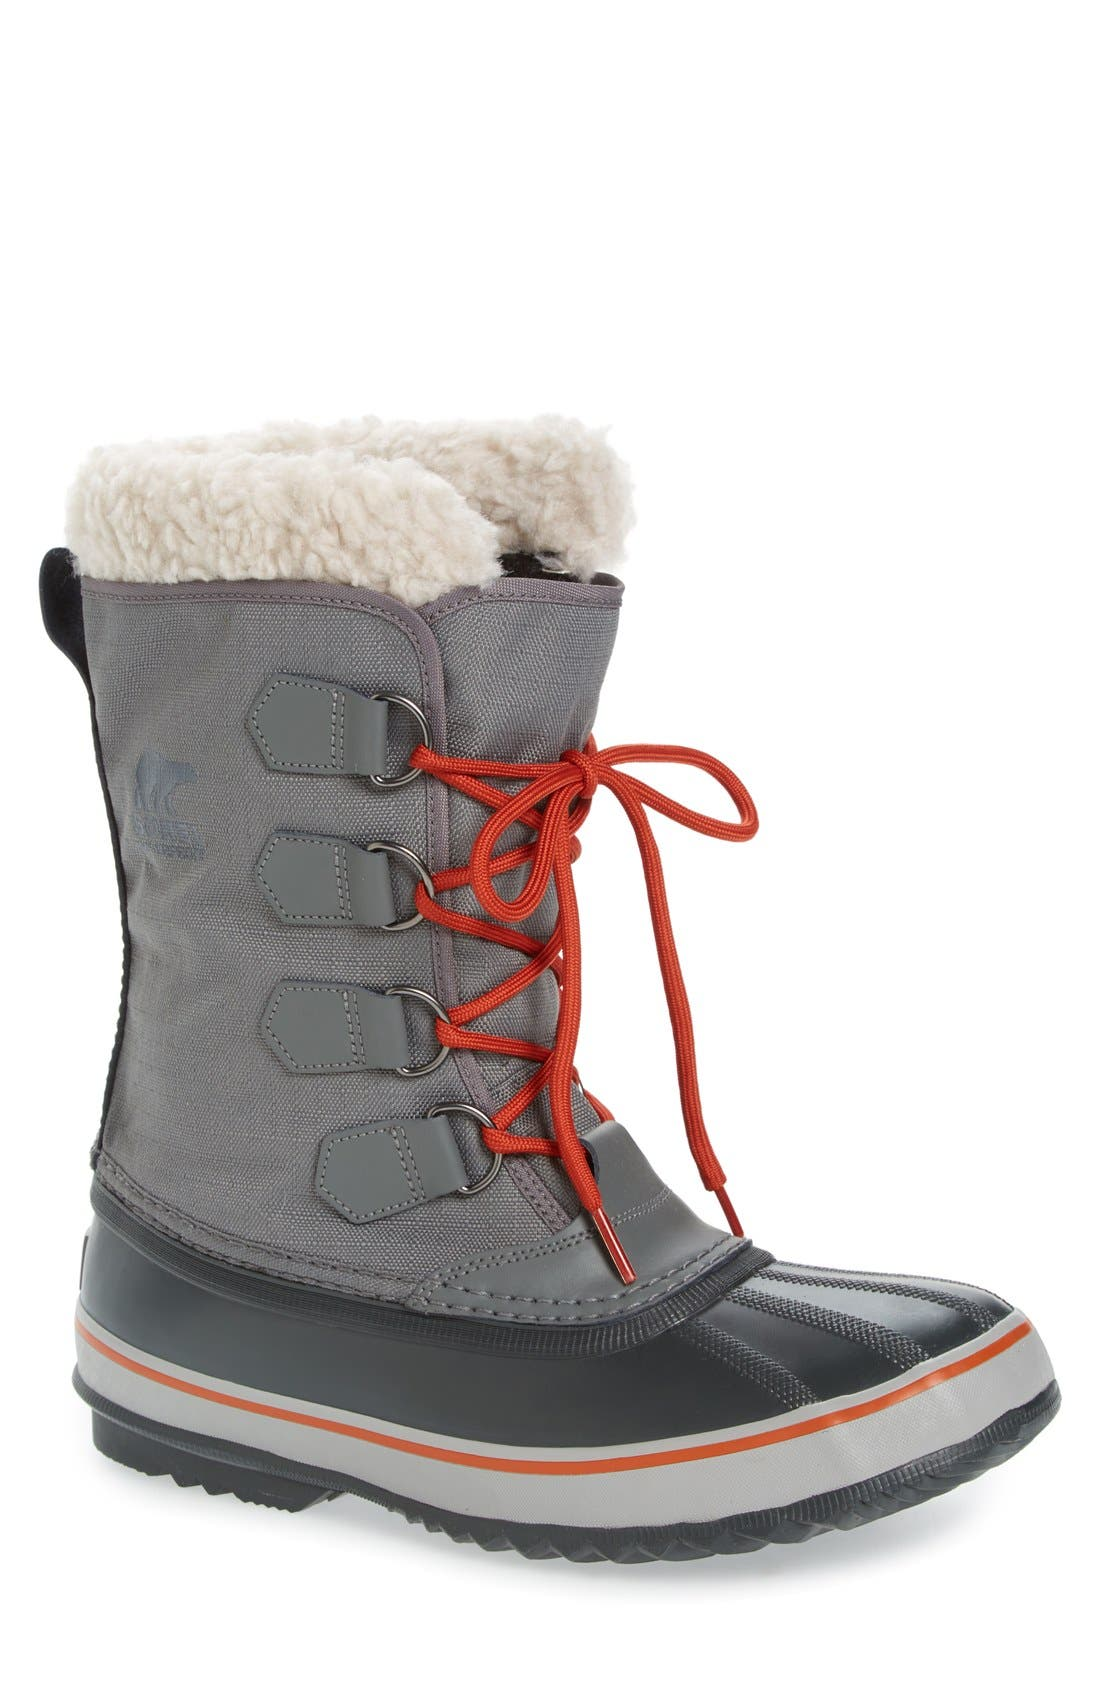 '1964 PAC' Snow Boot,                         Main,                         color, DARK FOG/ SHARK GREY